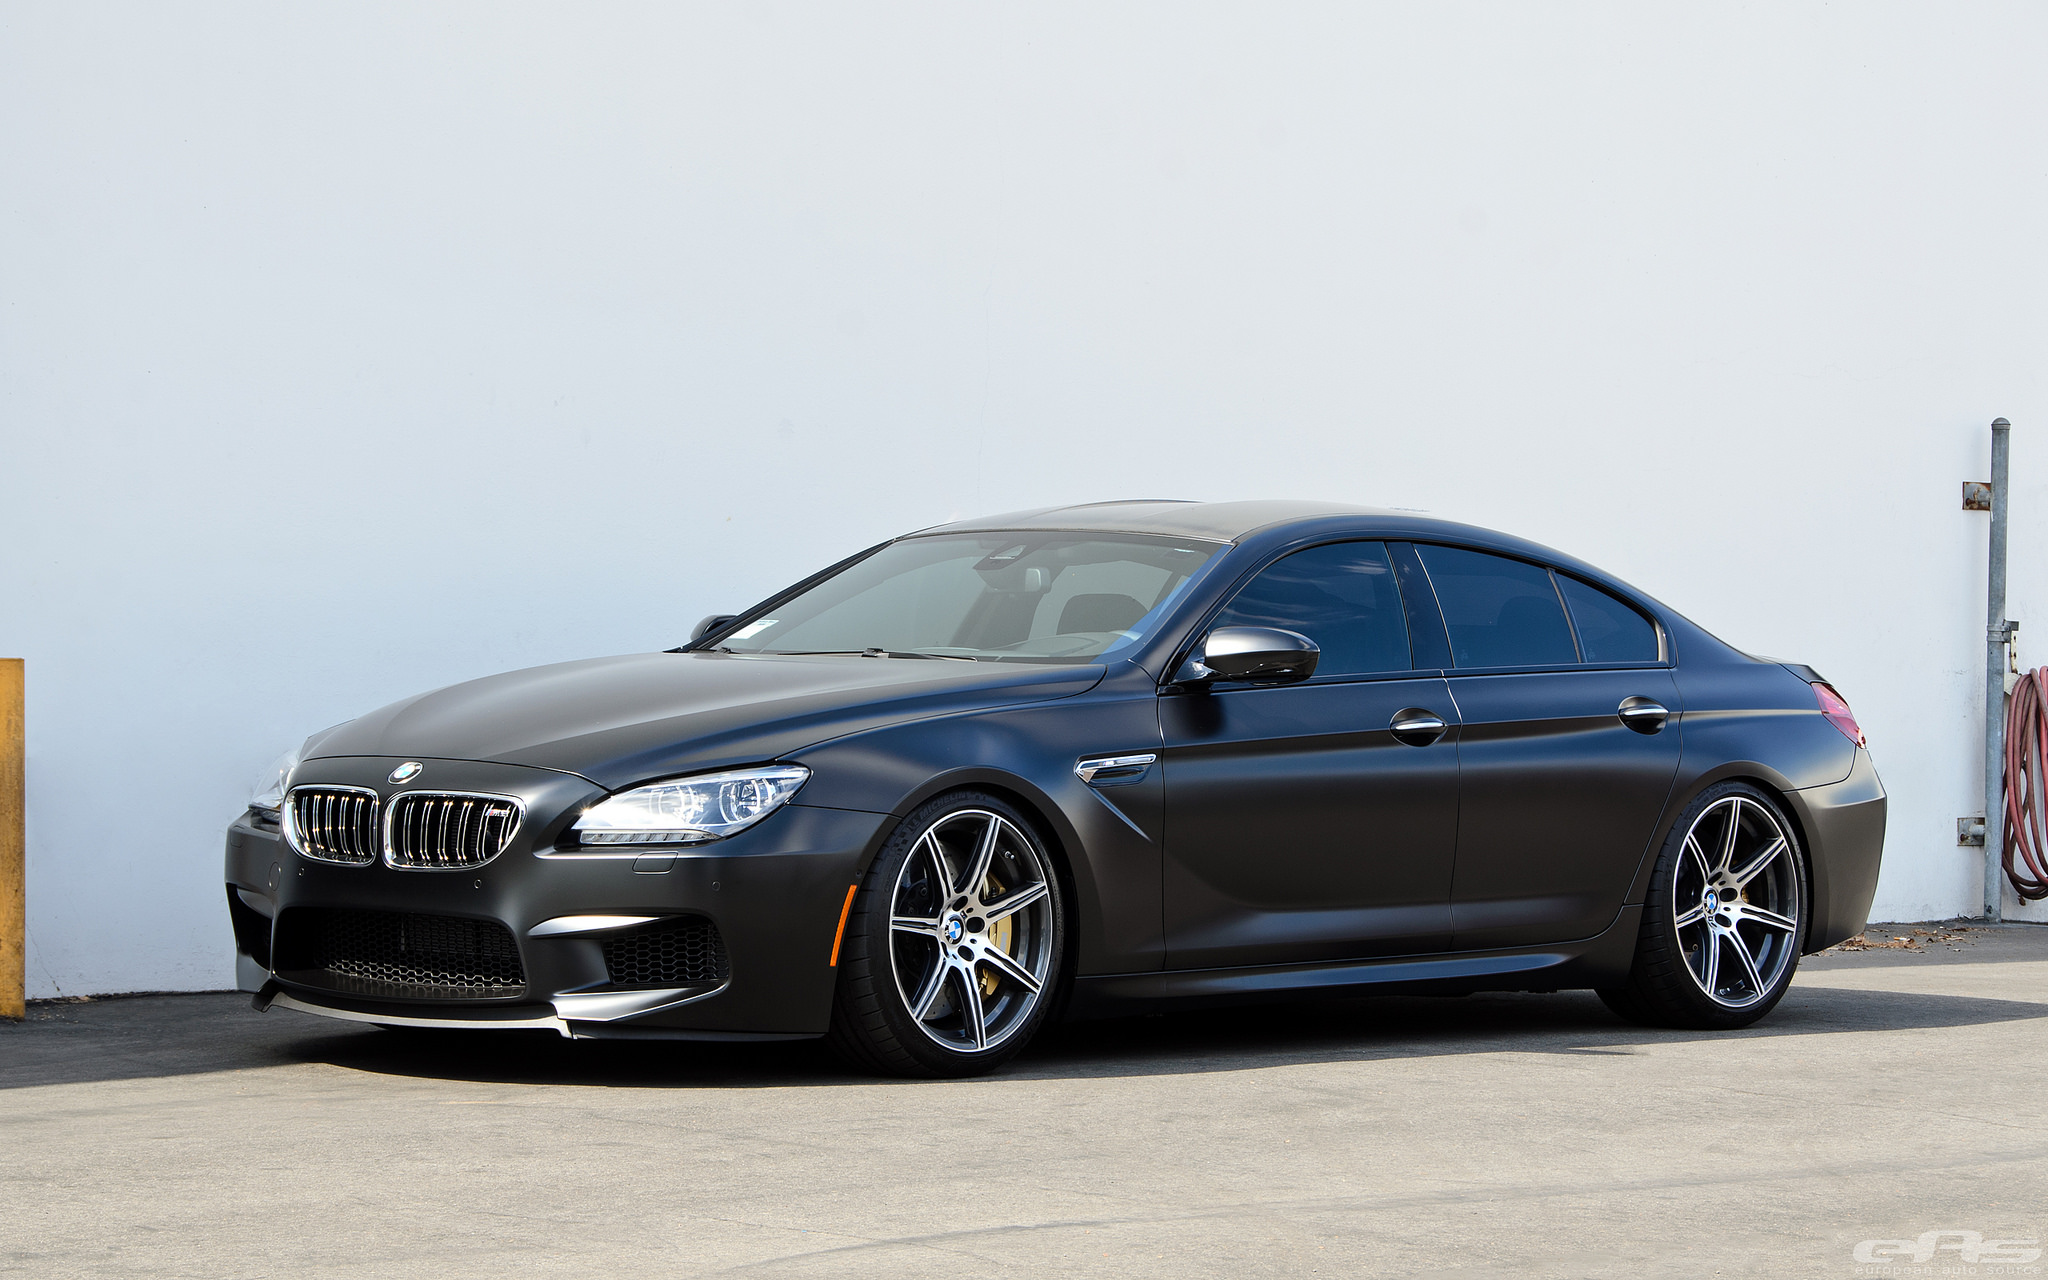 Frozen Black Bmw M6 Gran Coupe By Eas